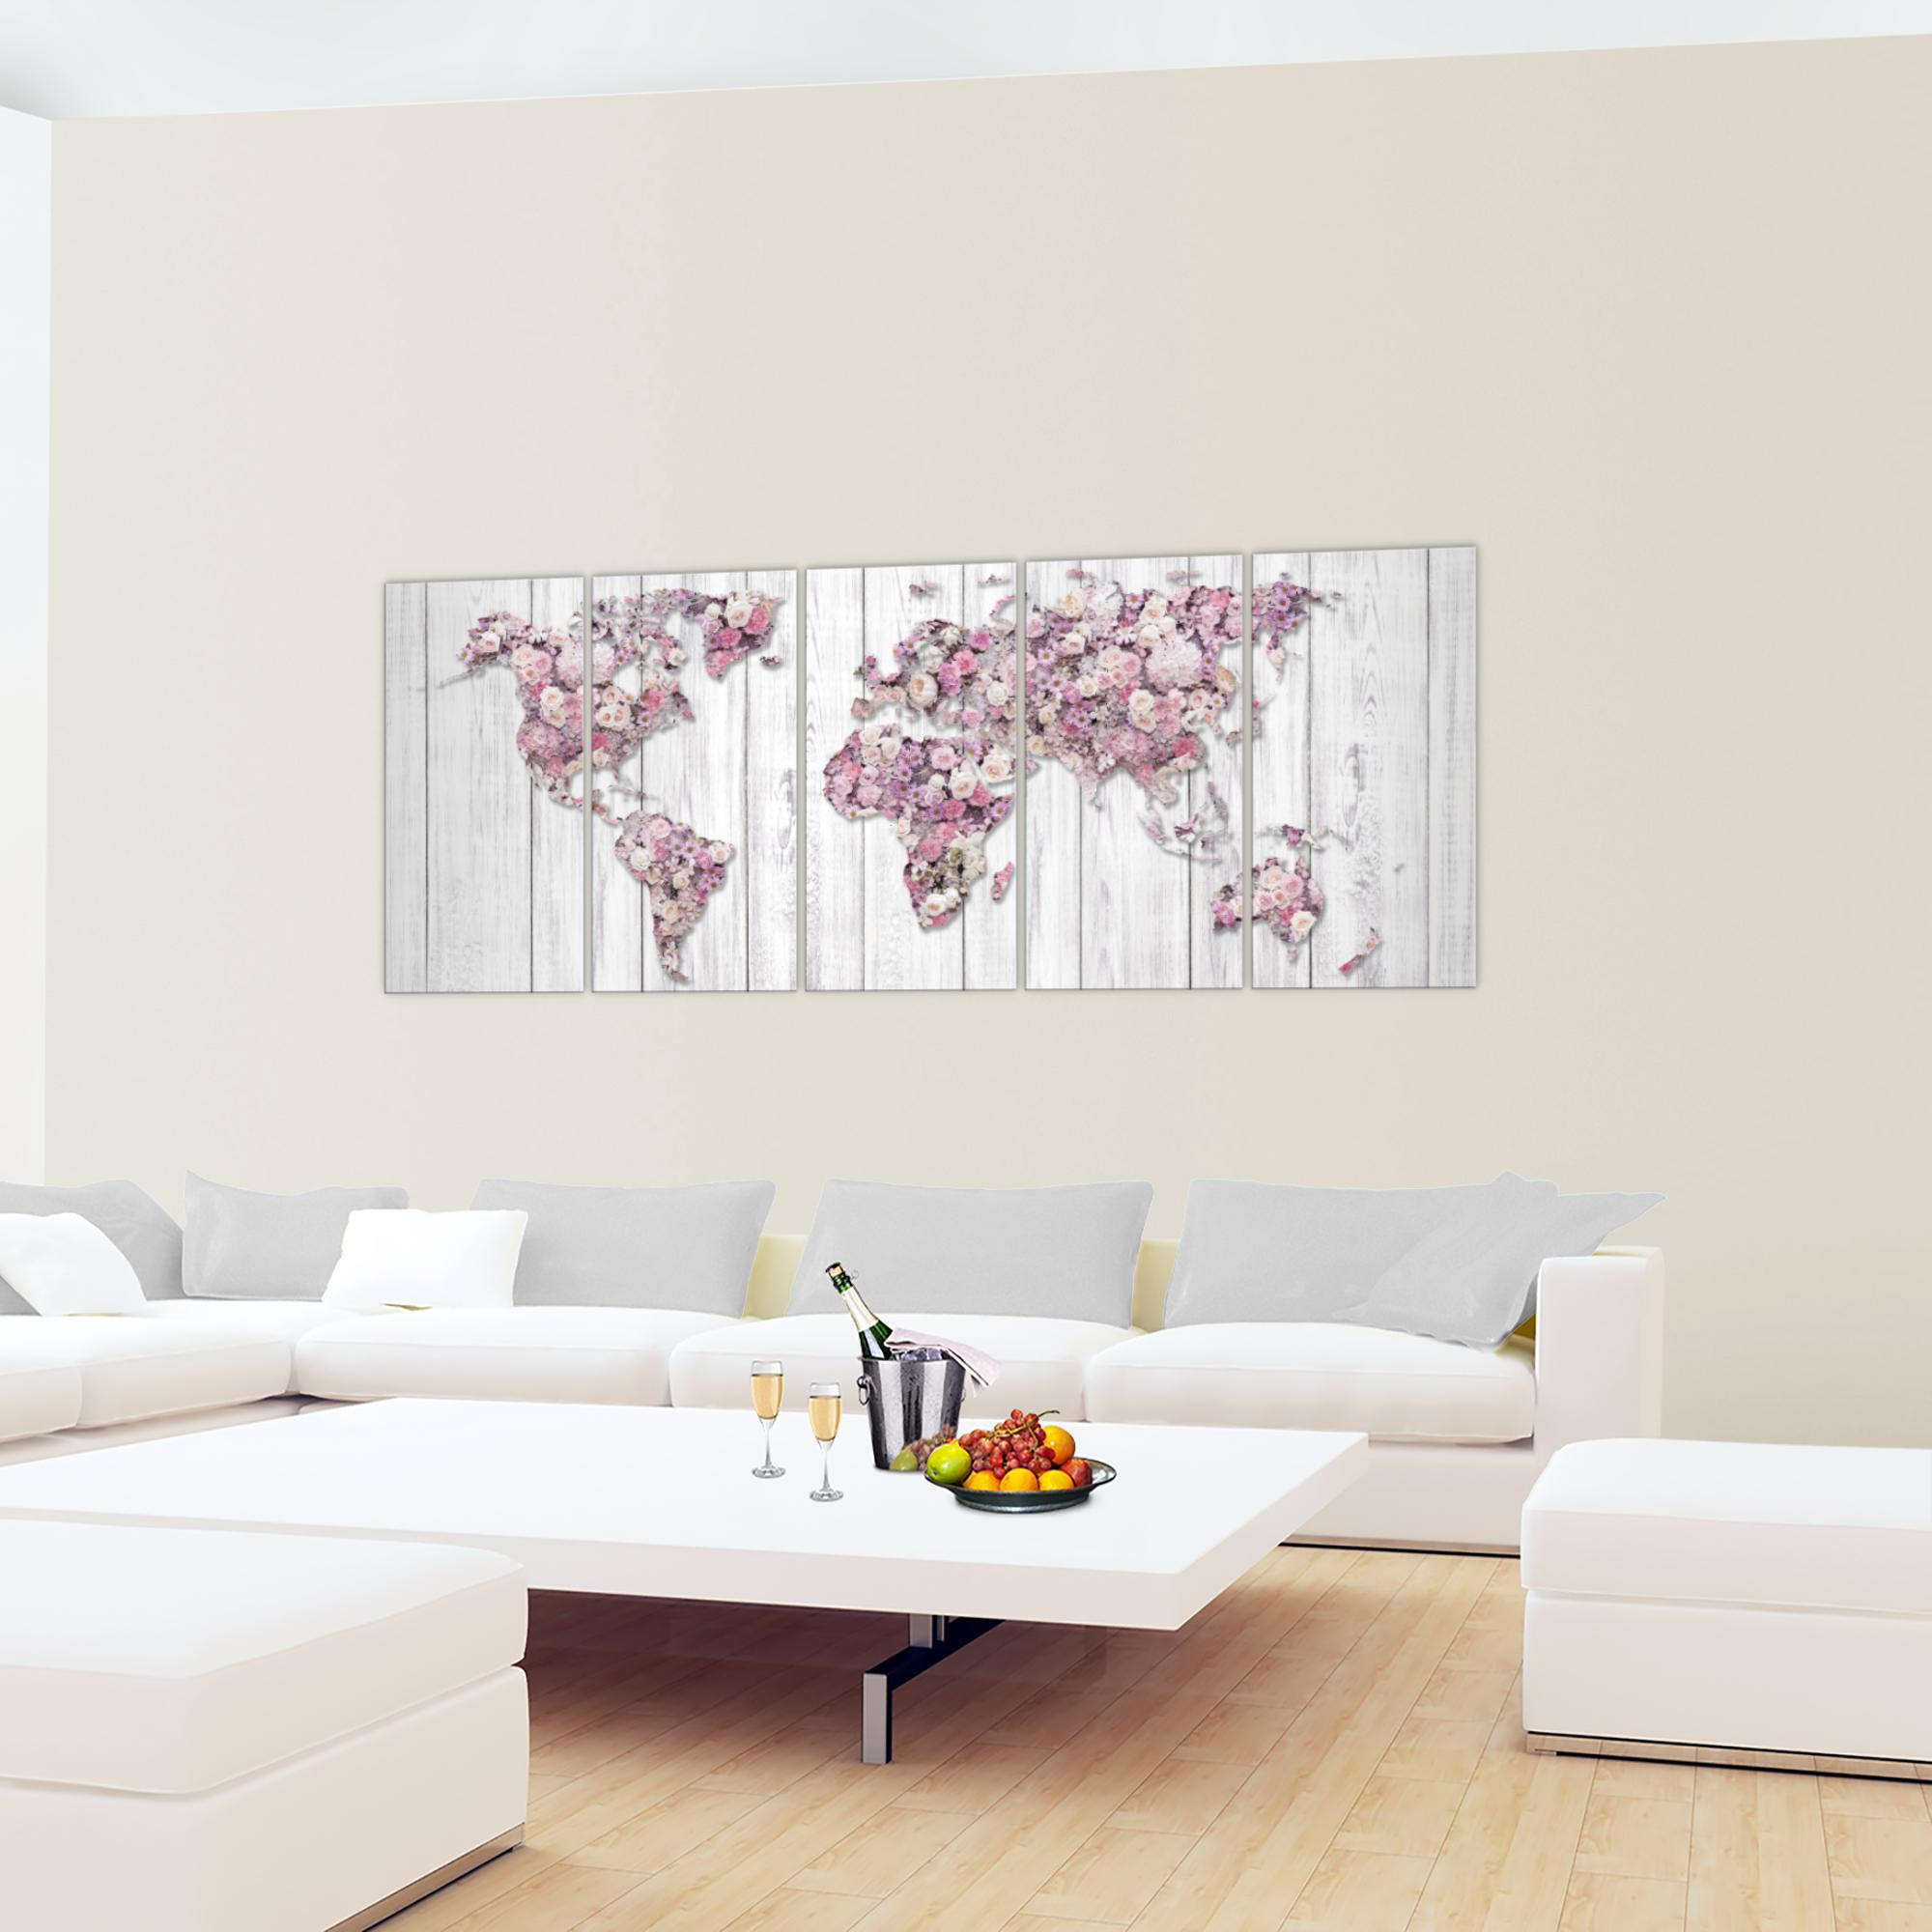 weltkarte blumen bild kunstdruck auf vlies leinwand xxl dekoration 023255p. Black Bedroom Furniture Sets. Home Design Ideas